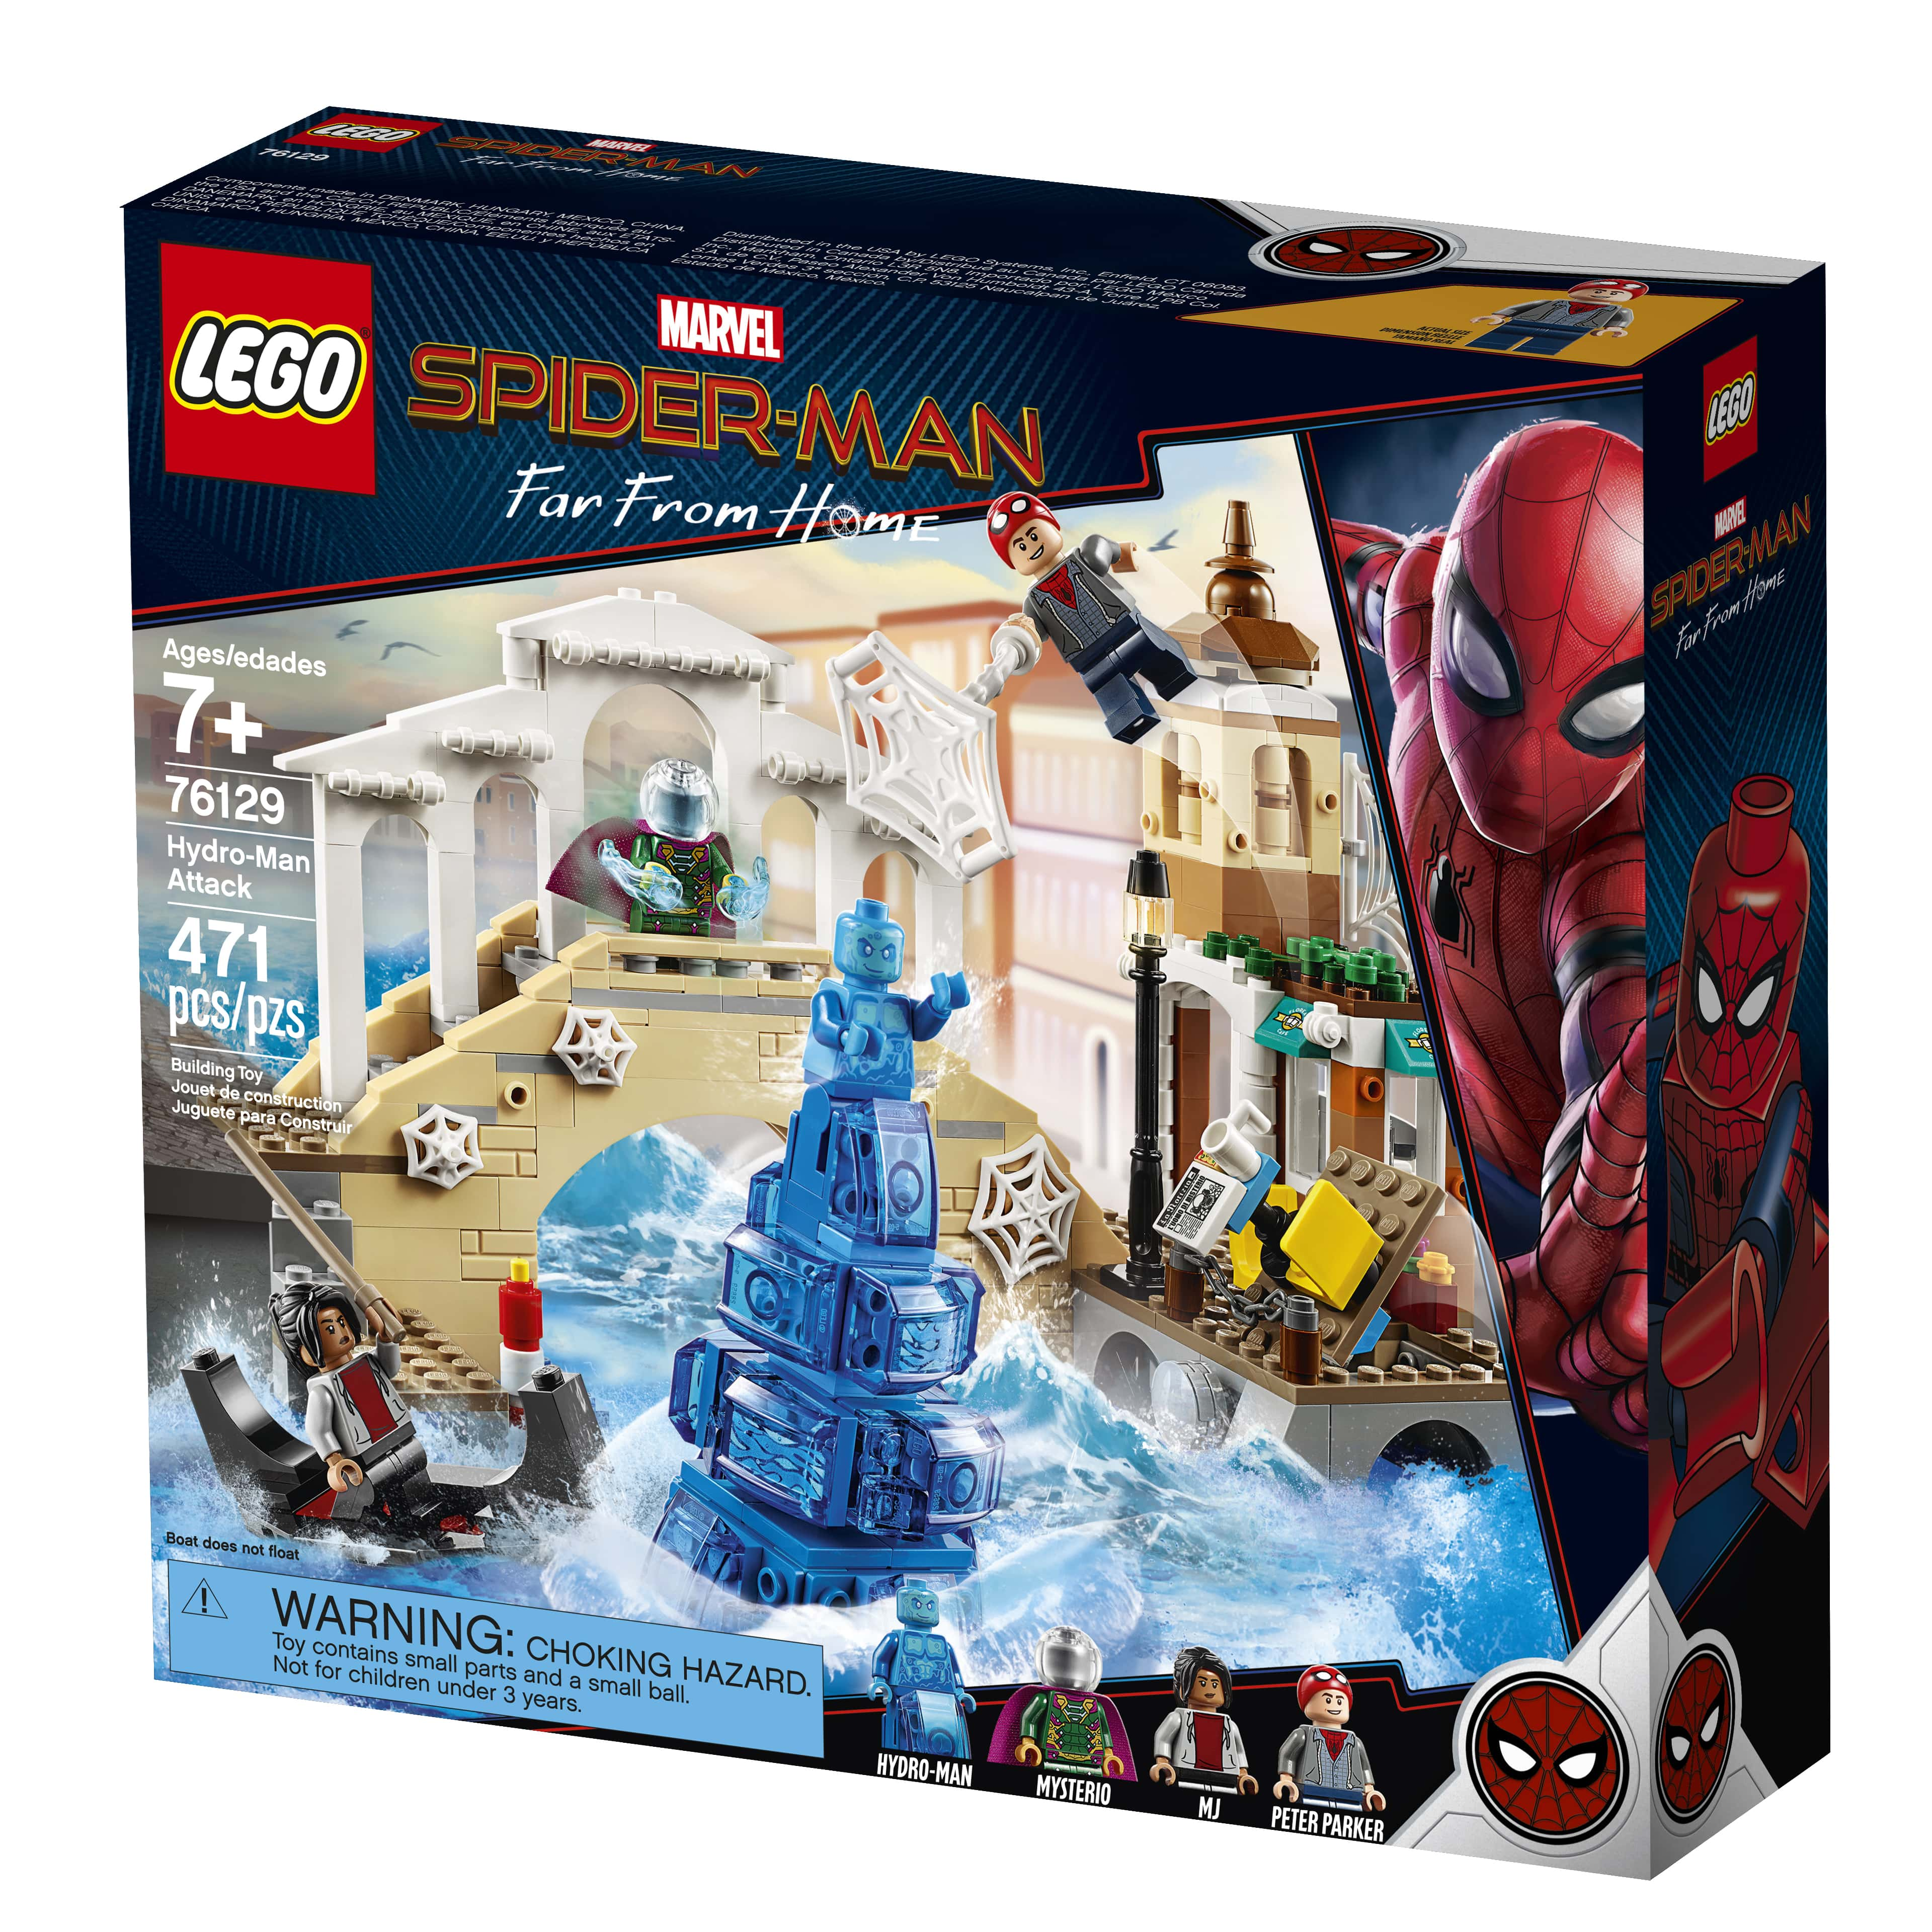 With Spider Mask Lego Peter Parker Minifigure 76129 Spider-man Far From Home